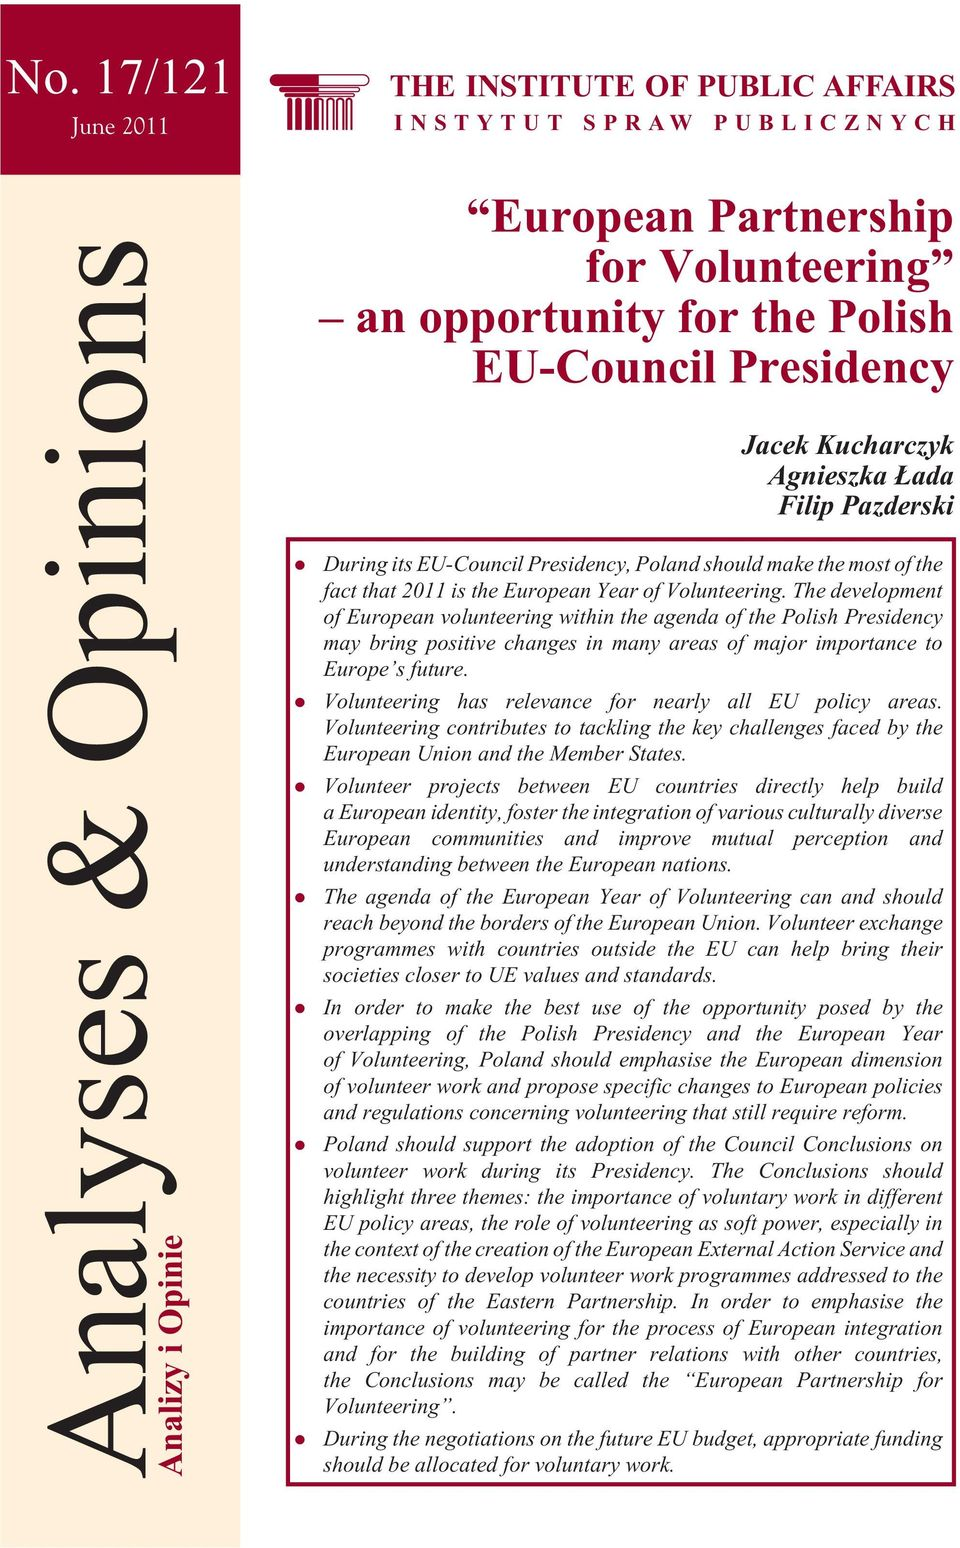 The development of European volunteering within the agenda of the Polish Presidency may bring positive changes in many areas of major importance to Europe s future.